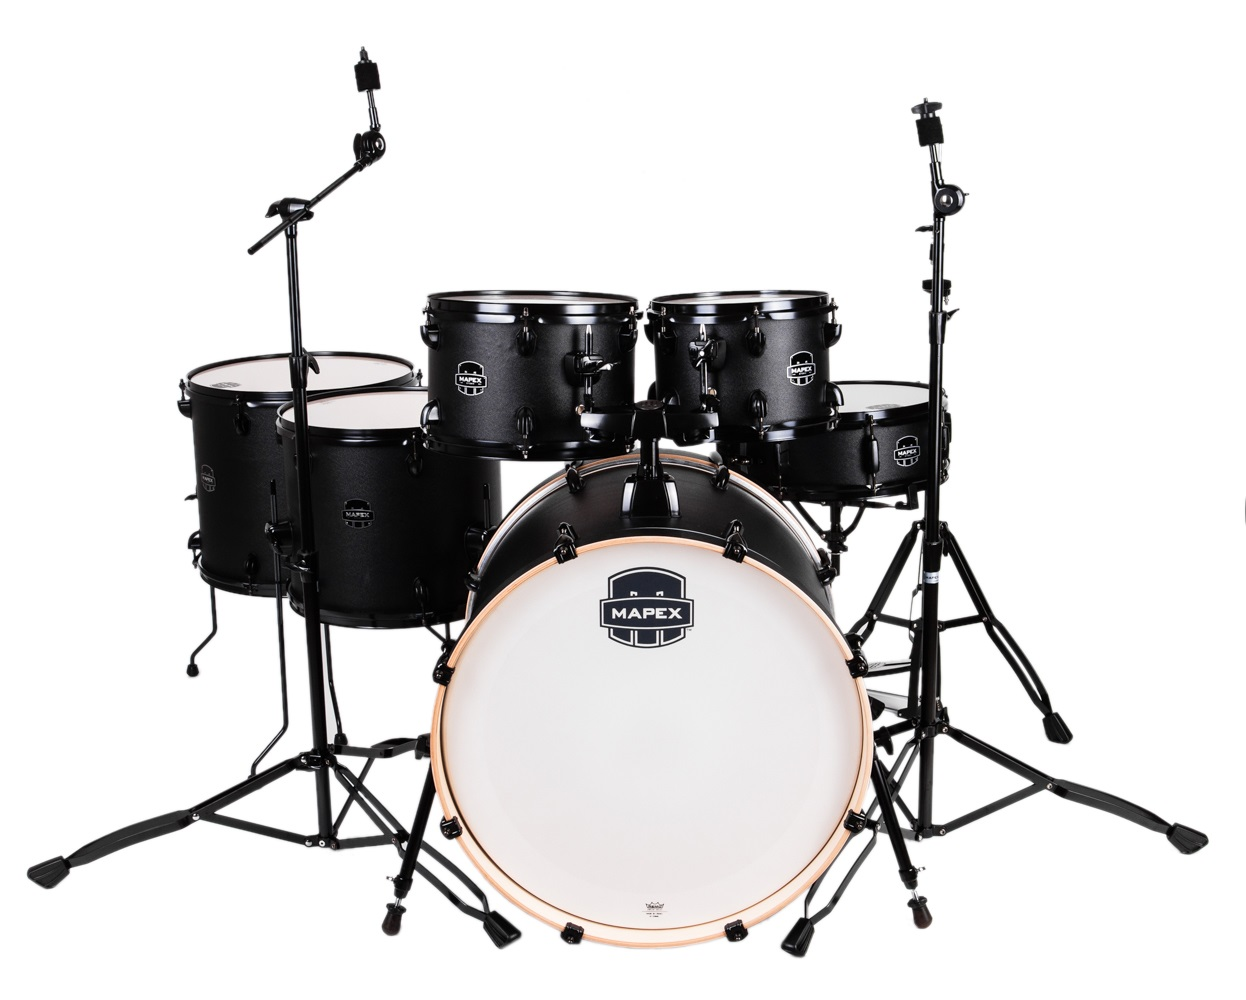 Mapex Storm fusion set Textured Black